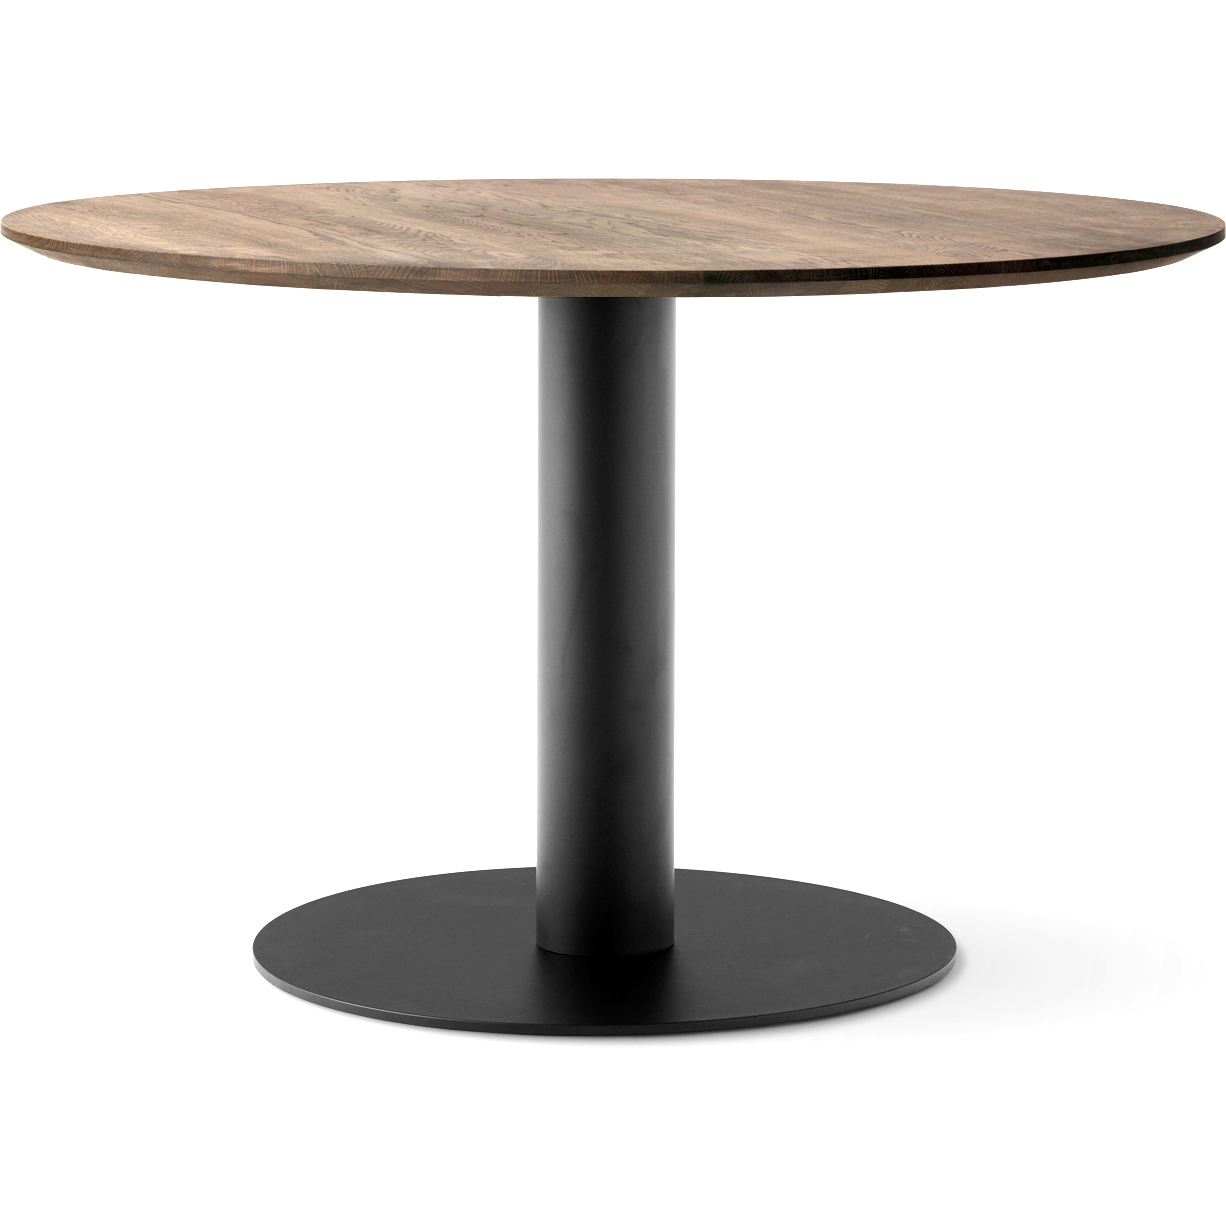 Bilde av &Tradition-In Between Table SK12 120 cm, Smoked Oiled Oak